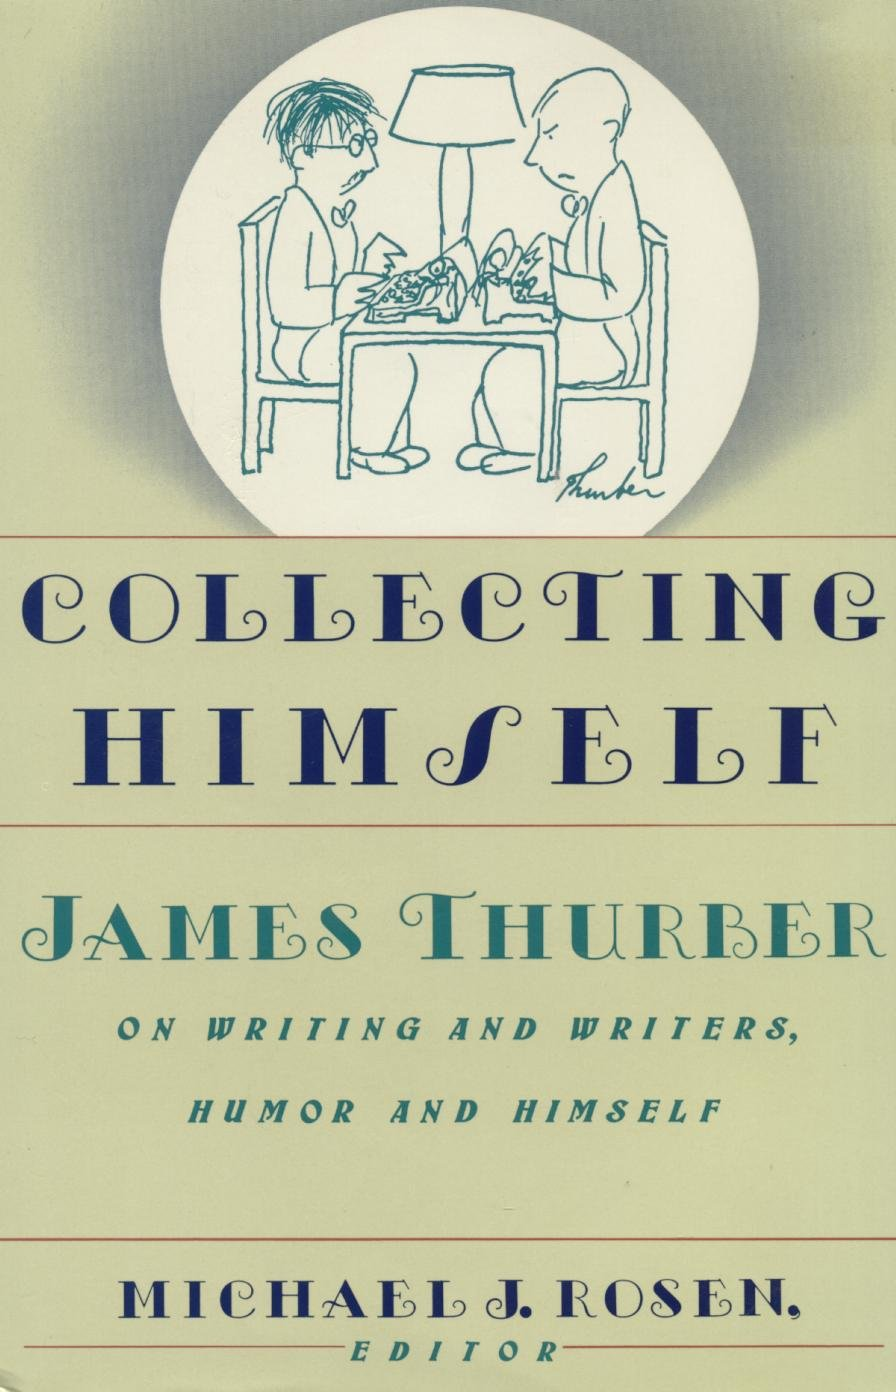 com collecting himself james thurber on writing and com collecting himself james thurber on writing and writers humor and himself 9780060161354 james thurber michael j rosen books